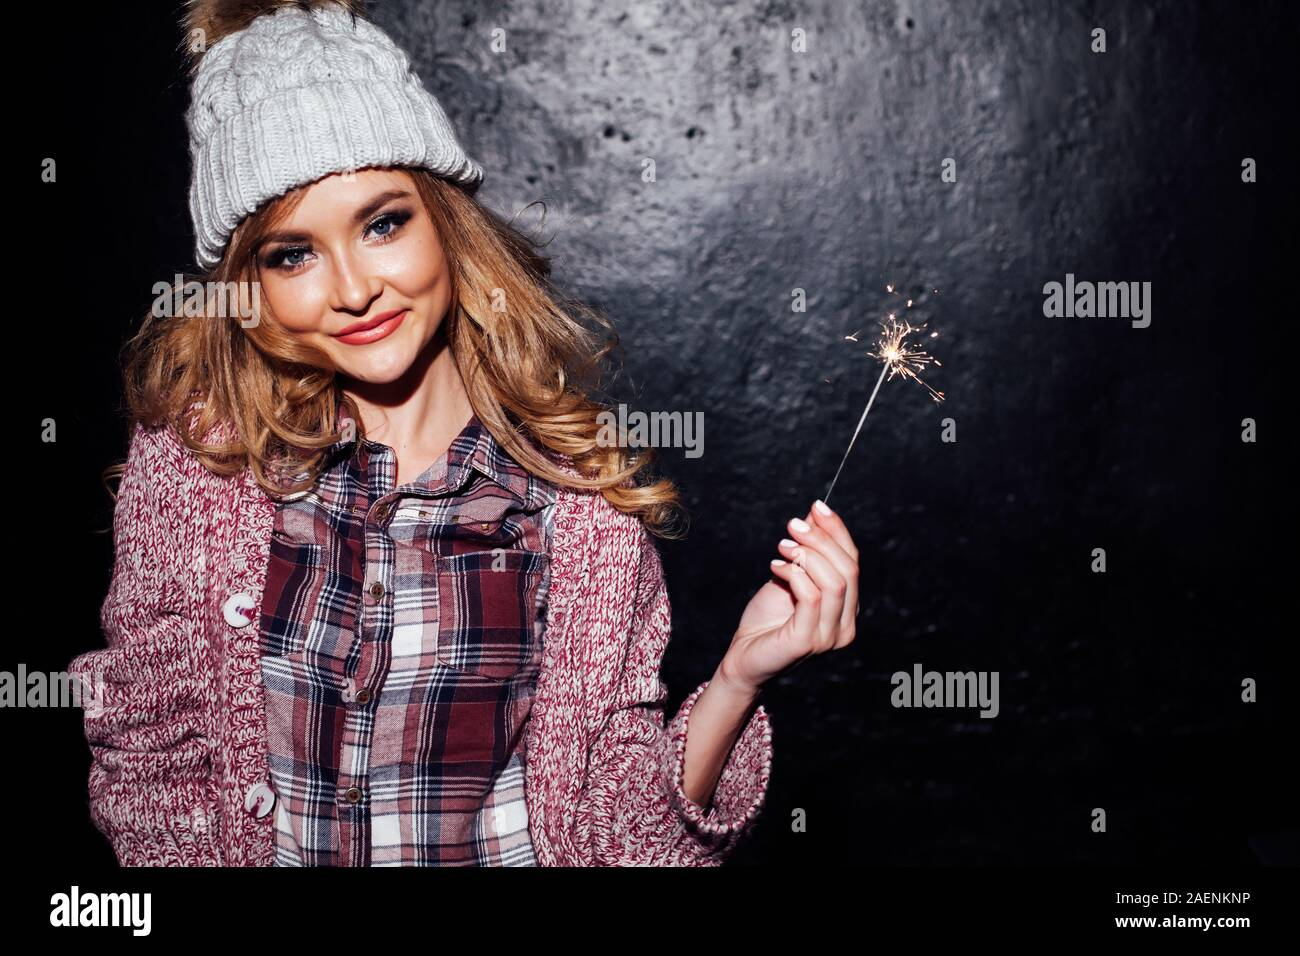 girl on holiday holding sparklers christmas tree Stock Photo